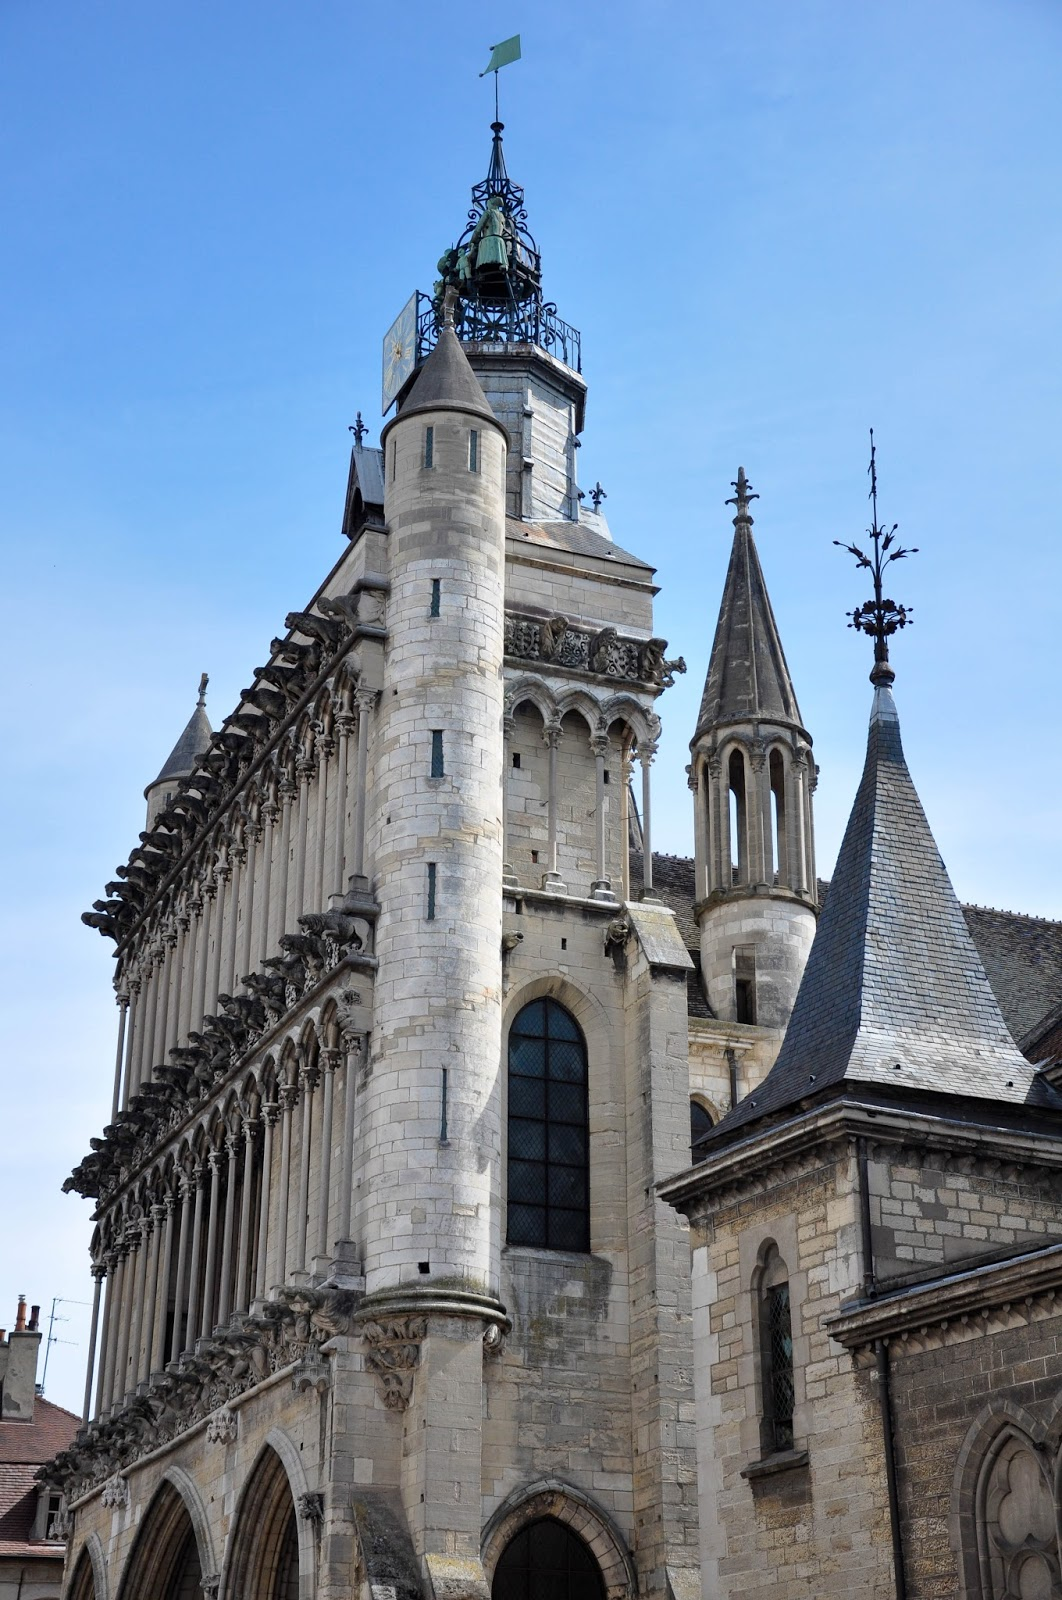 The facade of the Church of Notre-Dame in Dijon, Burgundy, France